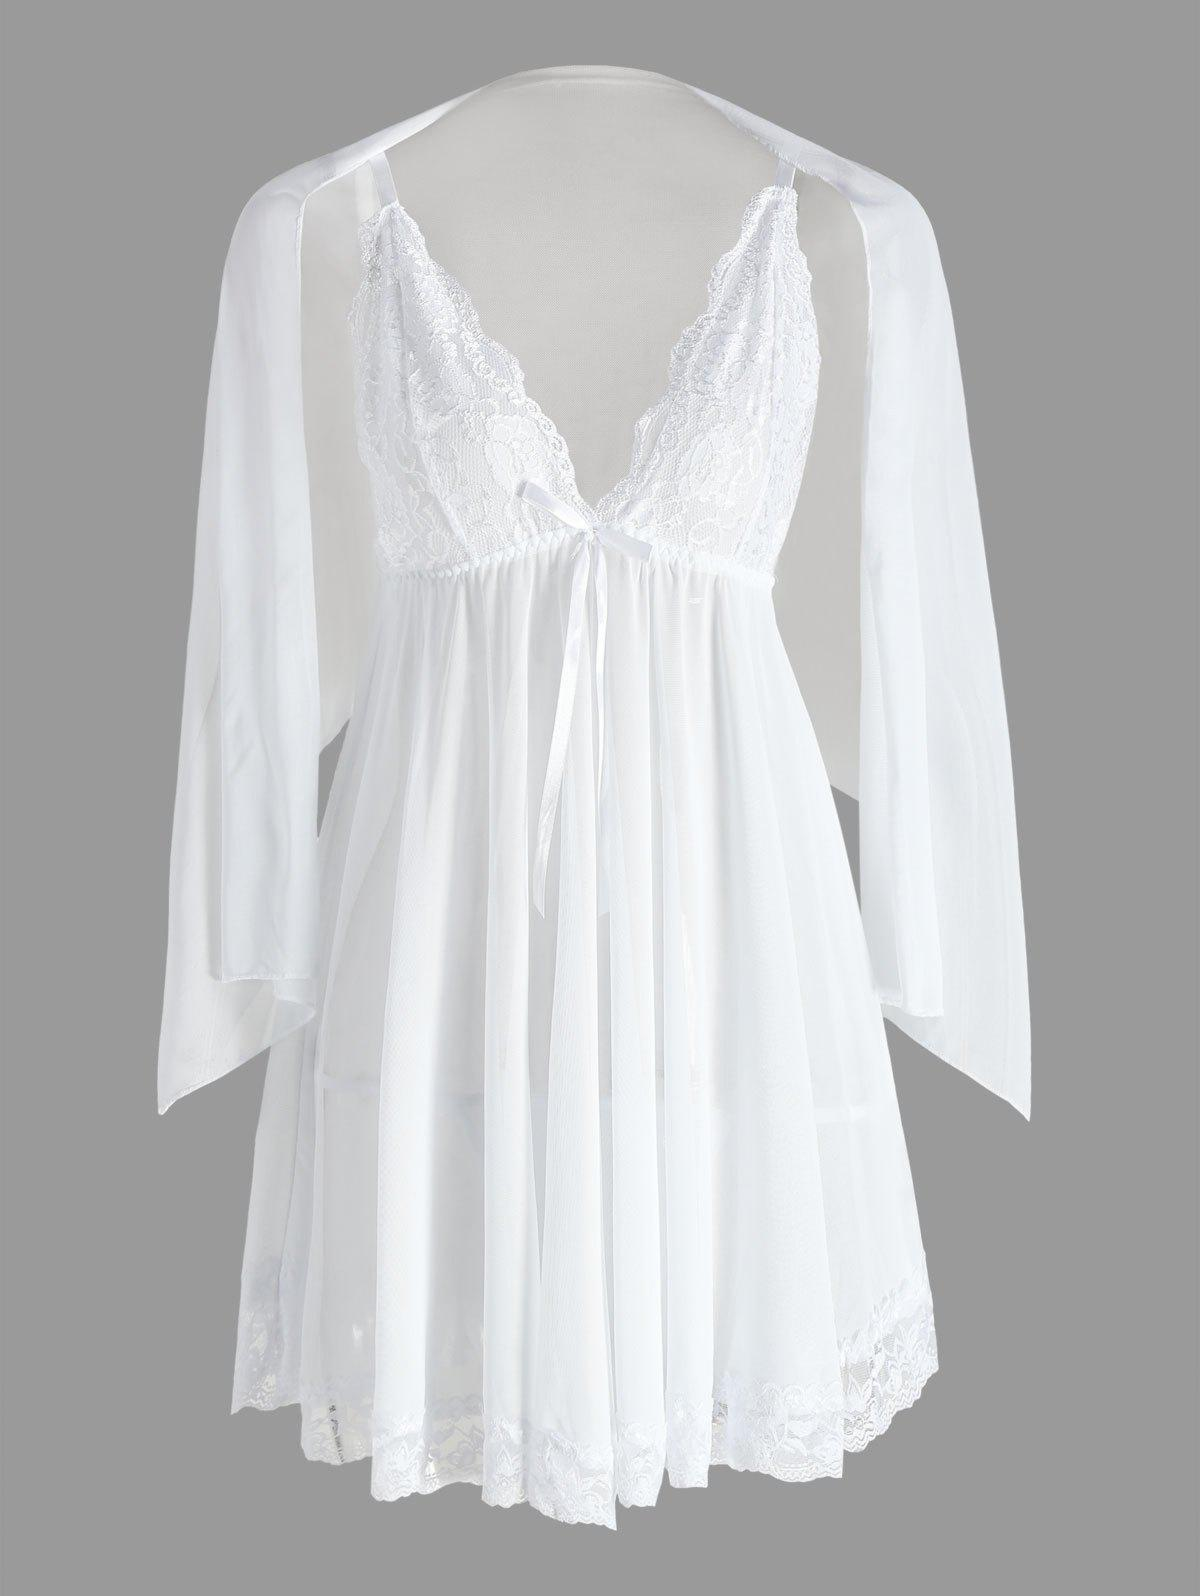 Mesh Sheer Slip BabydollWOMEN<br><br>Size: XL; Color: WHITE; Material: Cotton,Polyester; Pattern Type: Solid; Embellishment: Backless,Lace; Weight: 0.1700kg; Package Contents: 1 x Babydoll  1 x T Back  1 x Mesh Scarf;